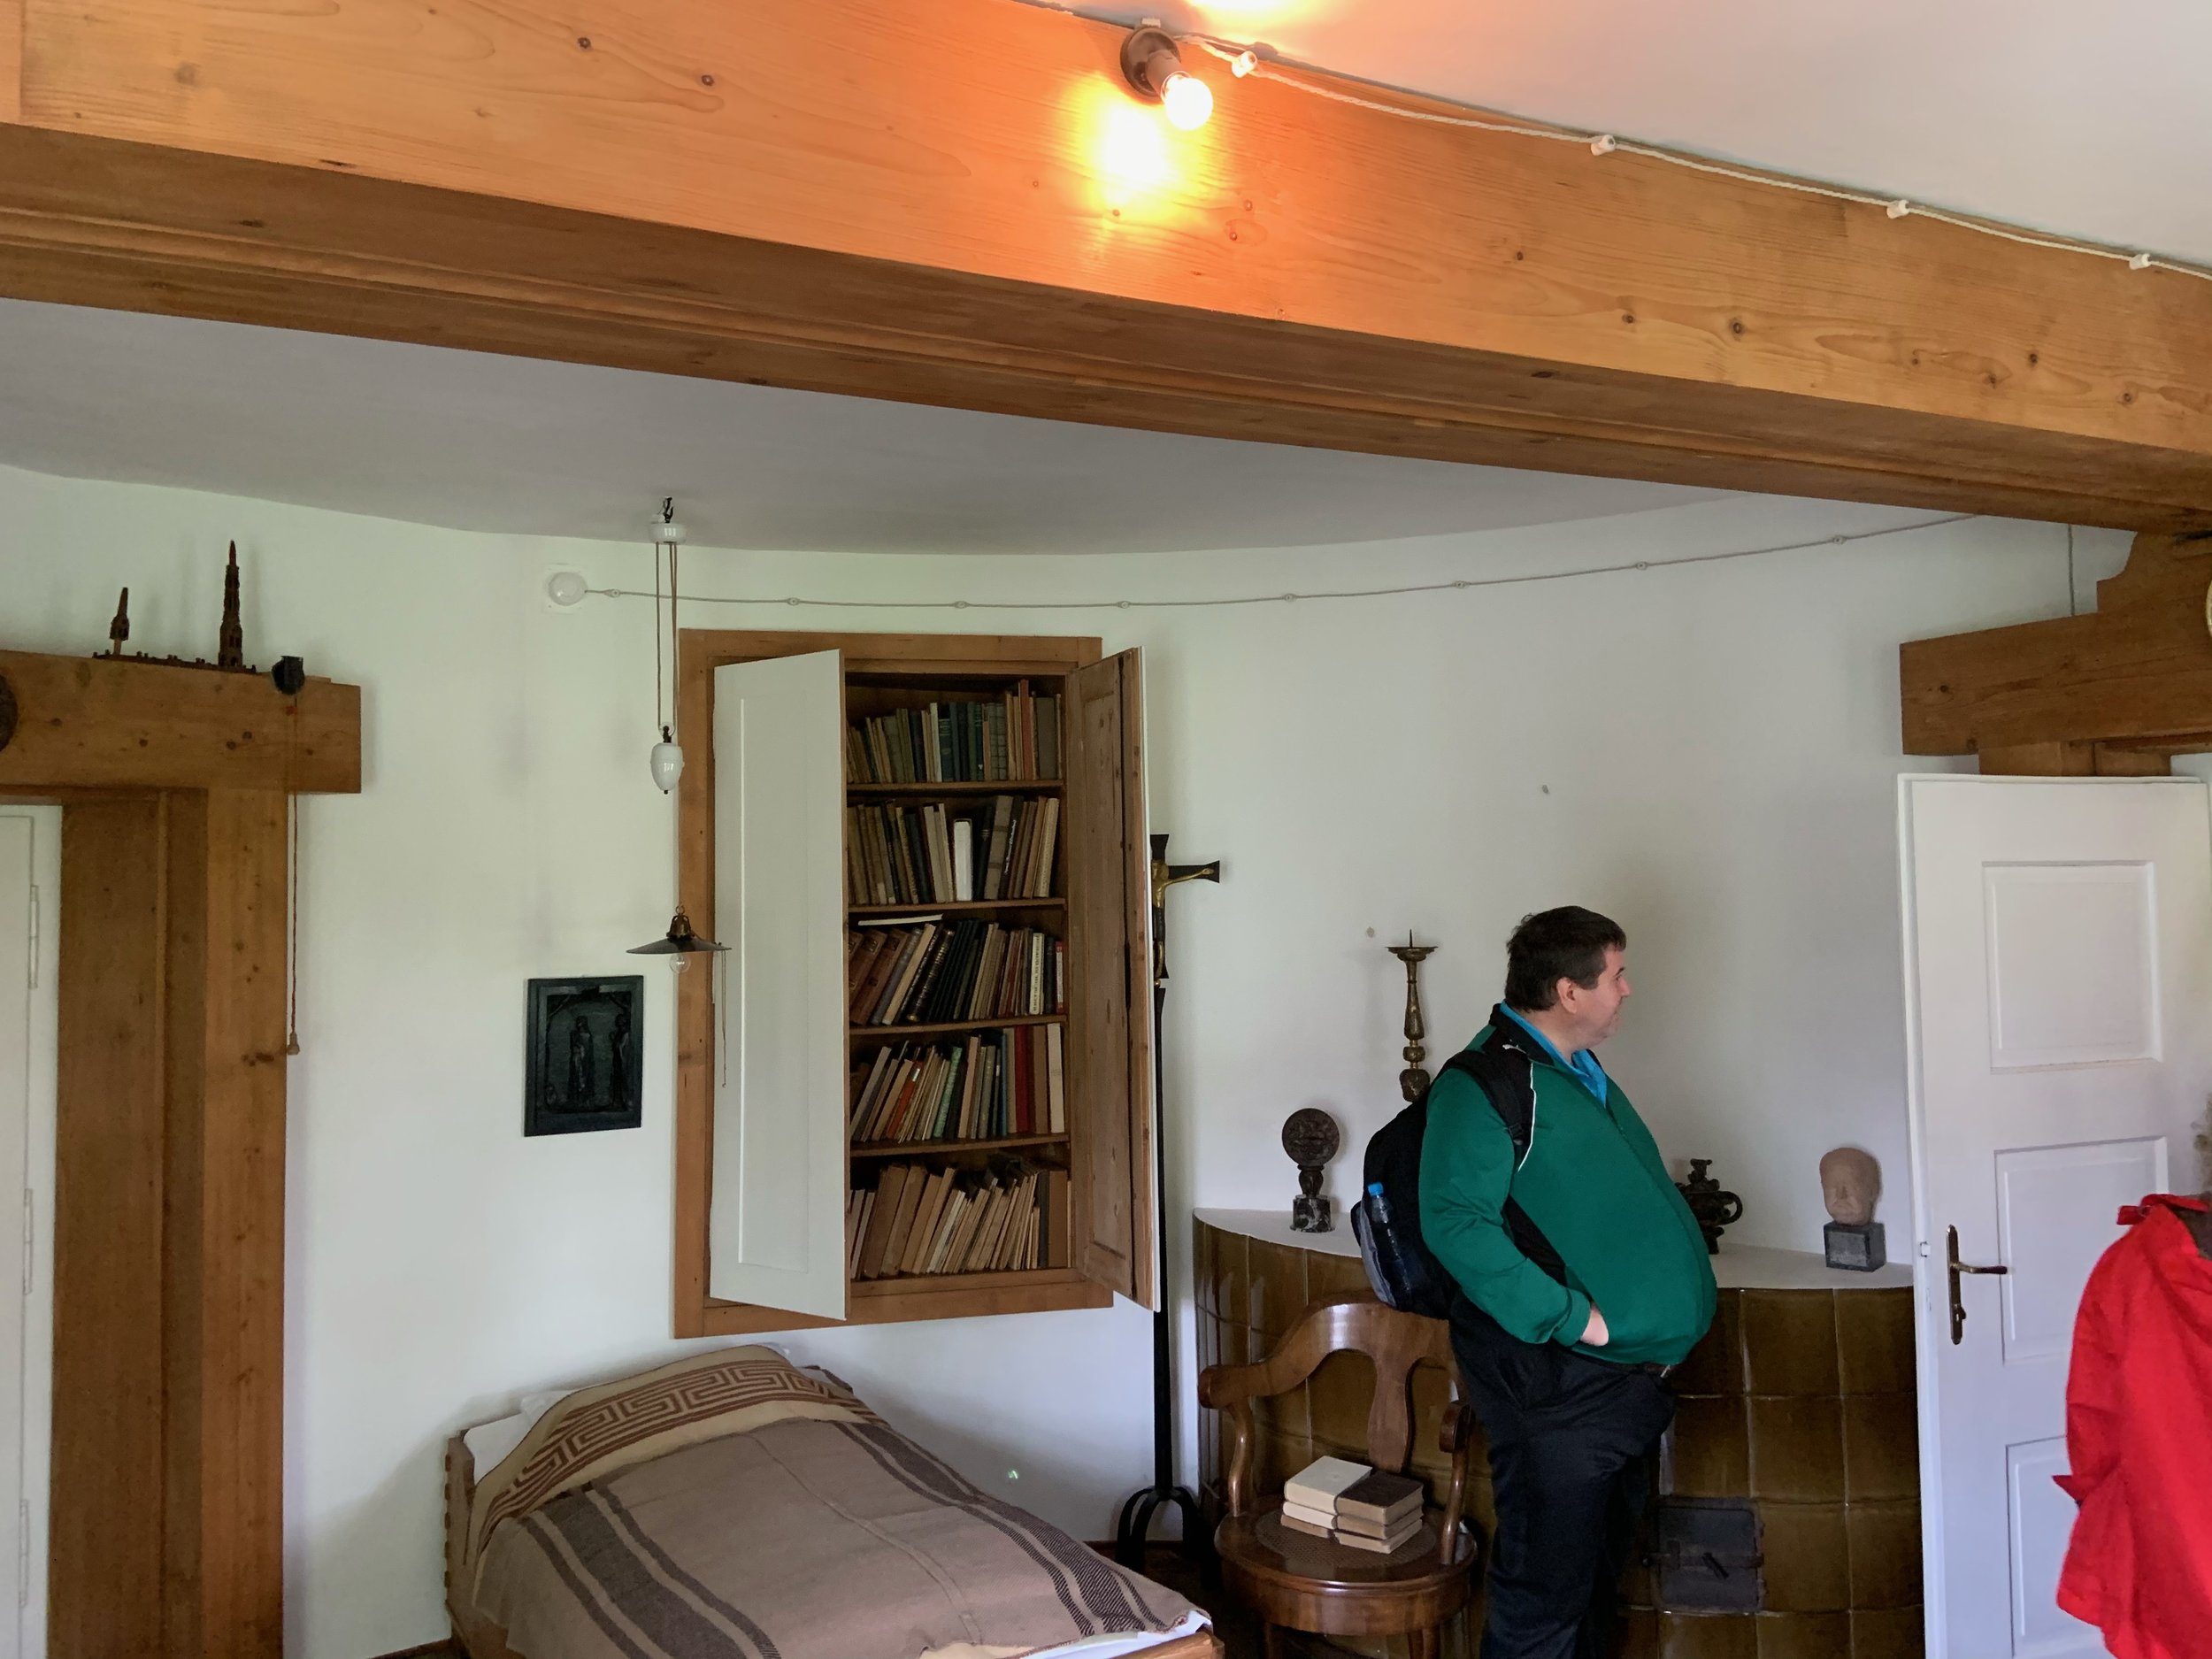 Plecnik House. Here are two pictures from his bedroom. The room is perfectly round but is divided in two by a central beam (not a ceiling support beam), which separates the room into two sections. One section contains the sleeping area, the other a workbench.